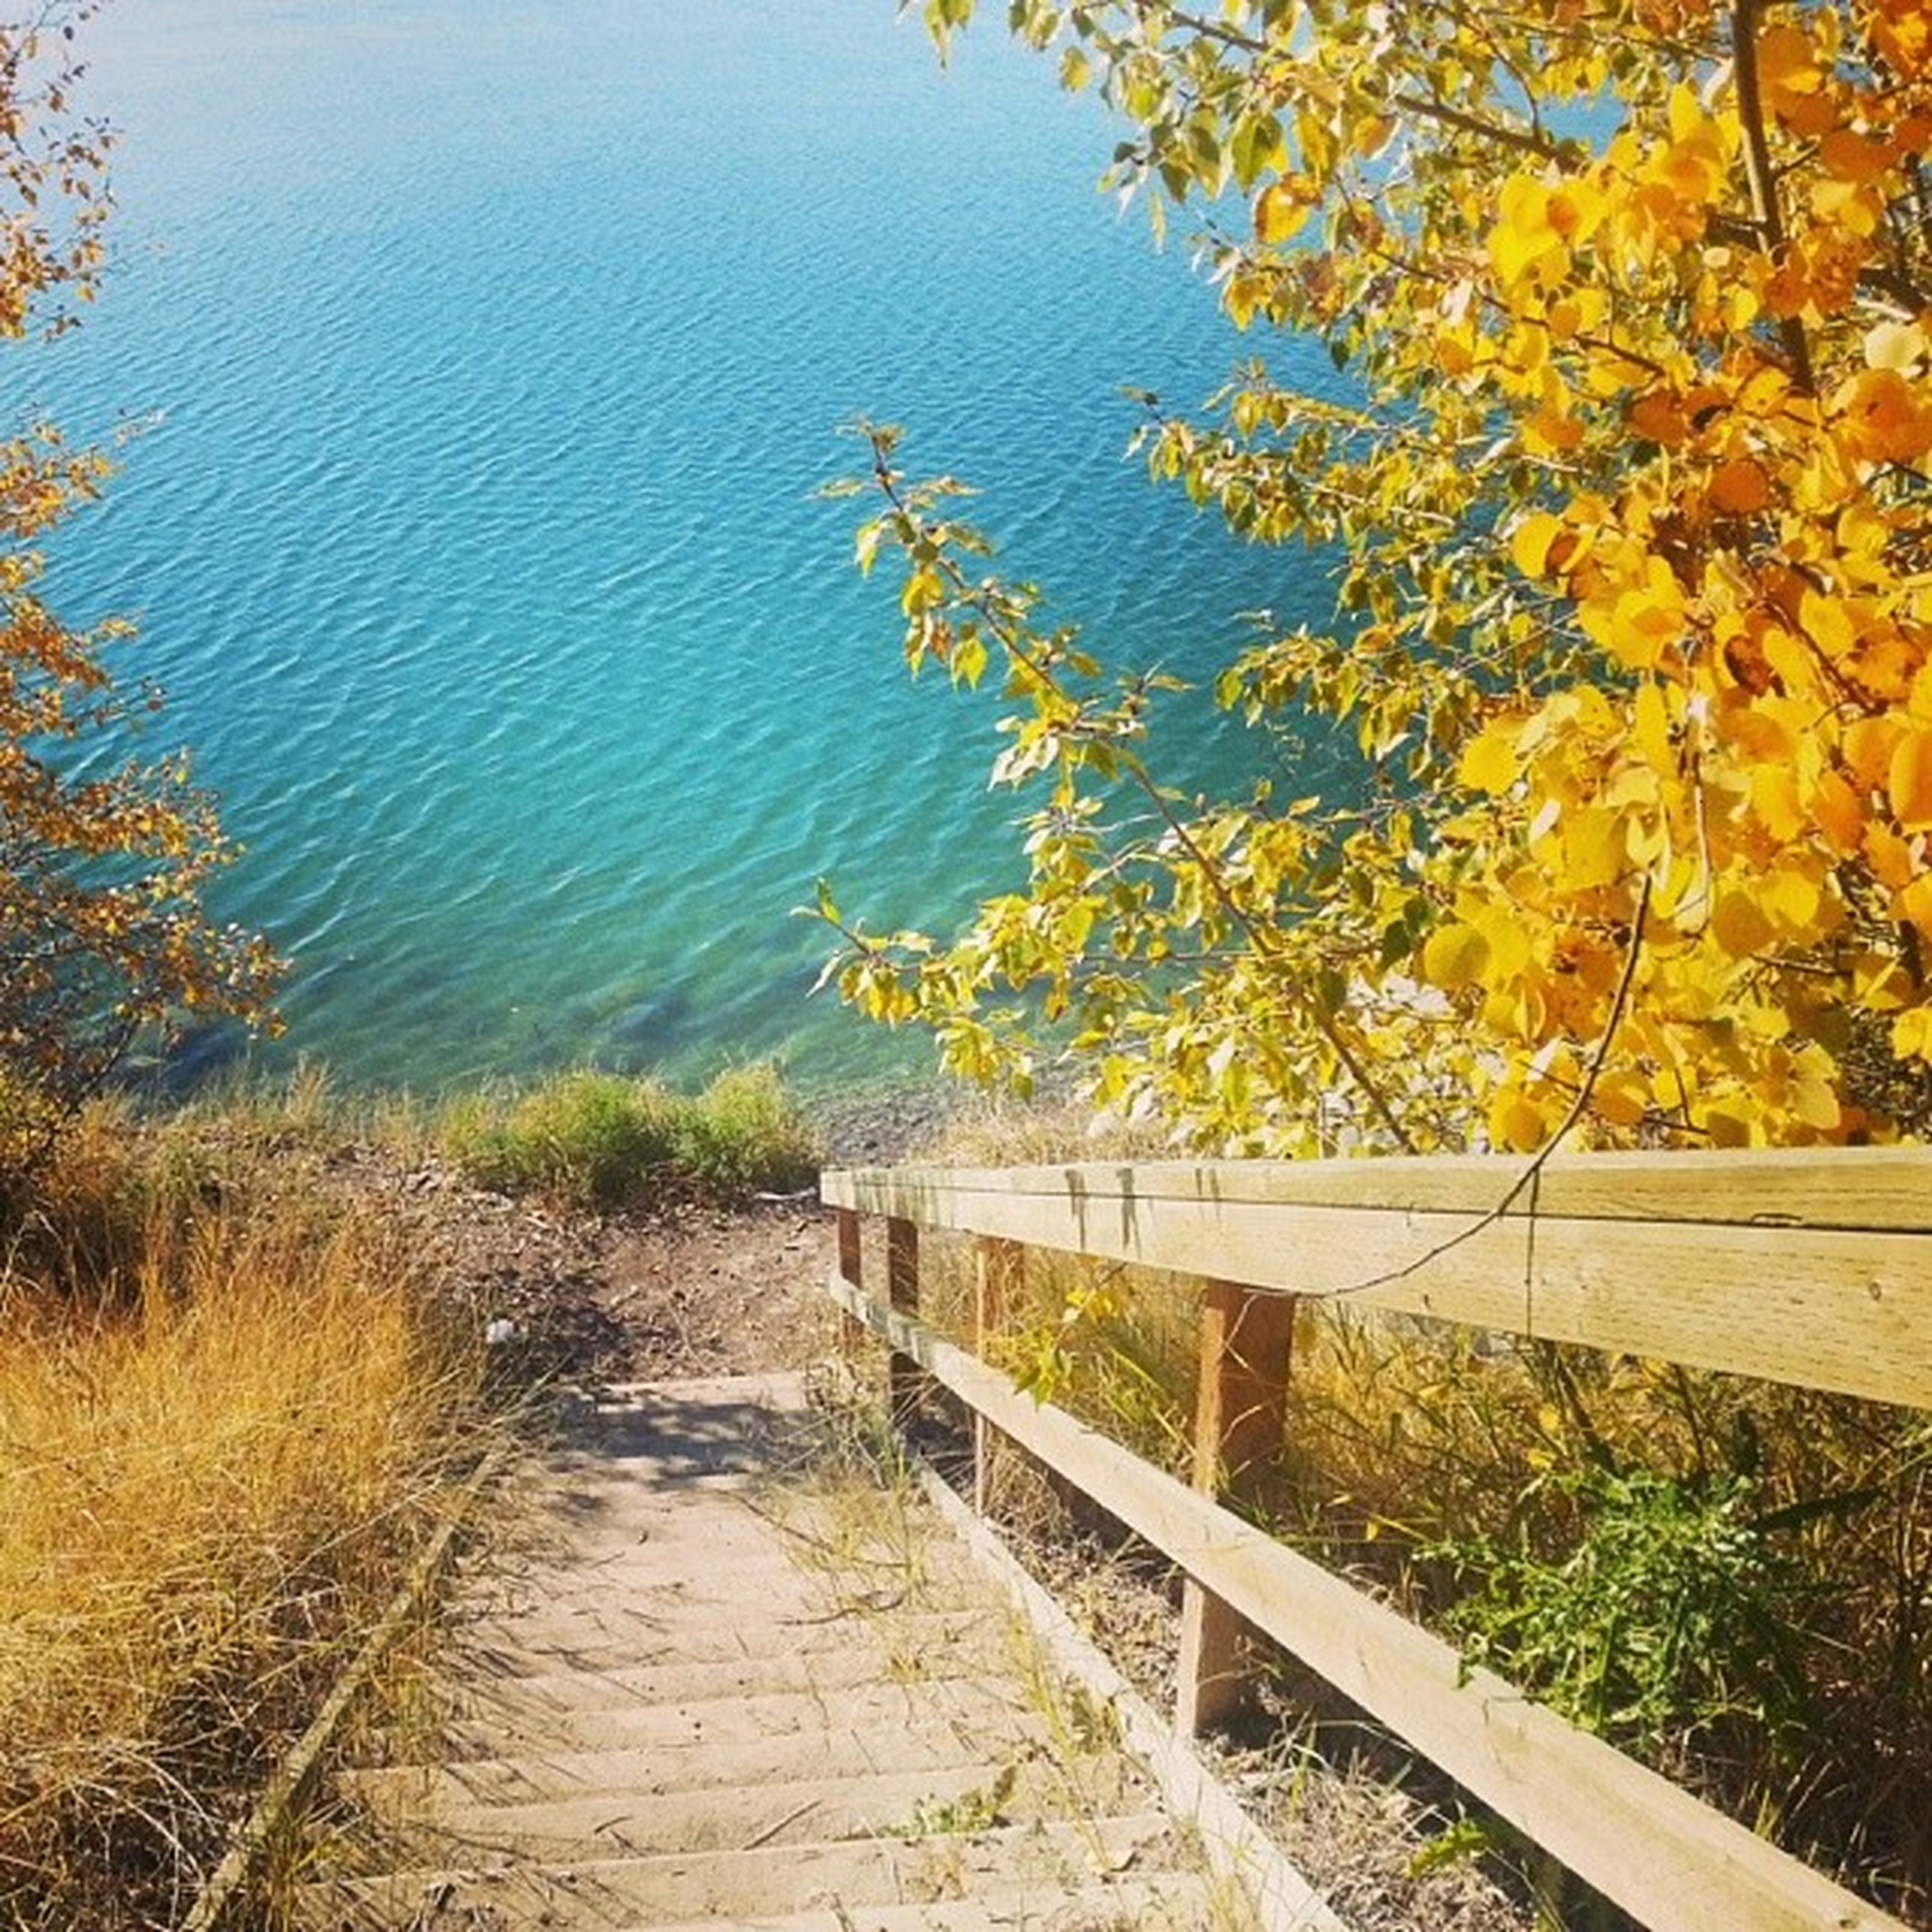 water, tree, tranquility, railing, nature, growth, beauty in nature, tranquil scene, the way forward, plant, scenics, lake, branch, autumn, day, grass, outdoors, no people, river, sunlight